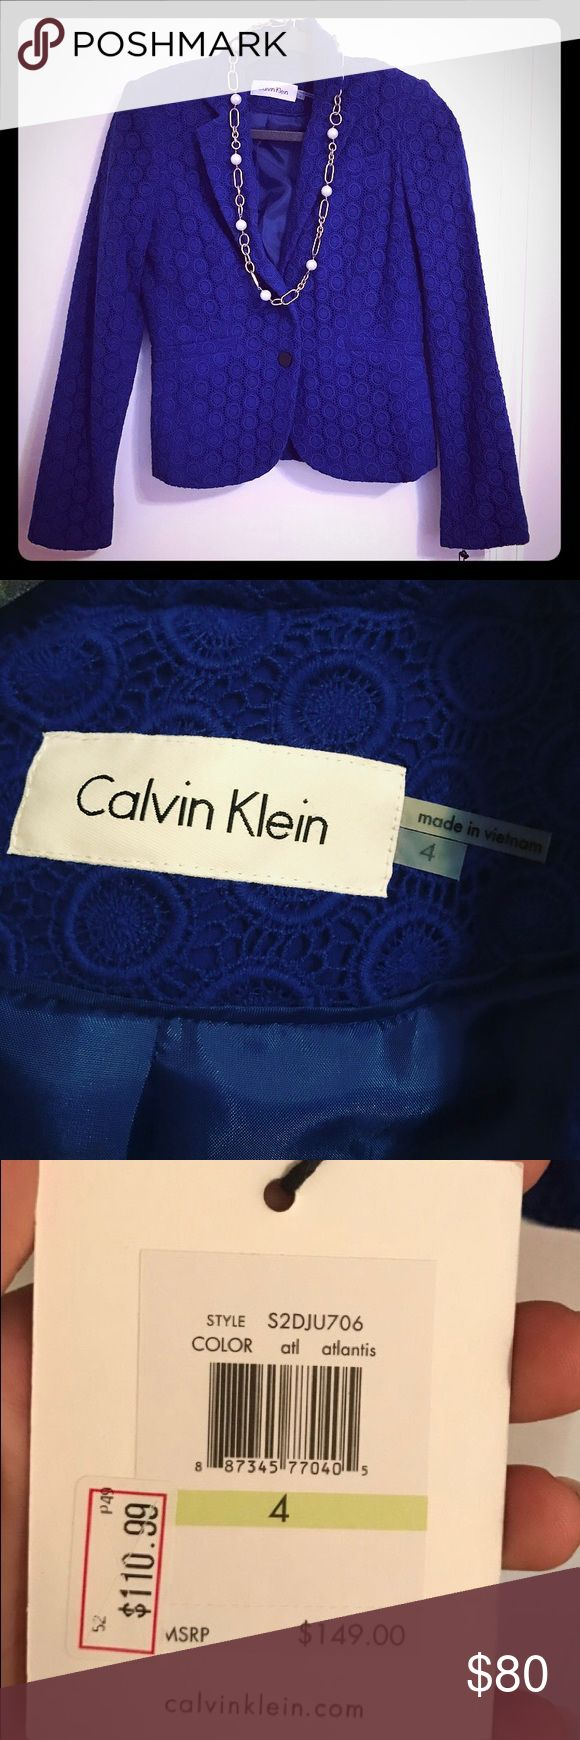 NWT Calvin Klein Royal Blue Blazer! Take home this beautiful blue blazer, new with tags! Stand out from the crowd while looking fashionable and sophisticated in this royal blue, textured Calvin Klein blazer. Calvin Klein Jackets & Coats Blazers